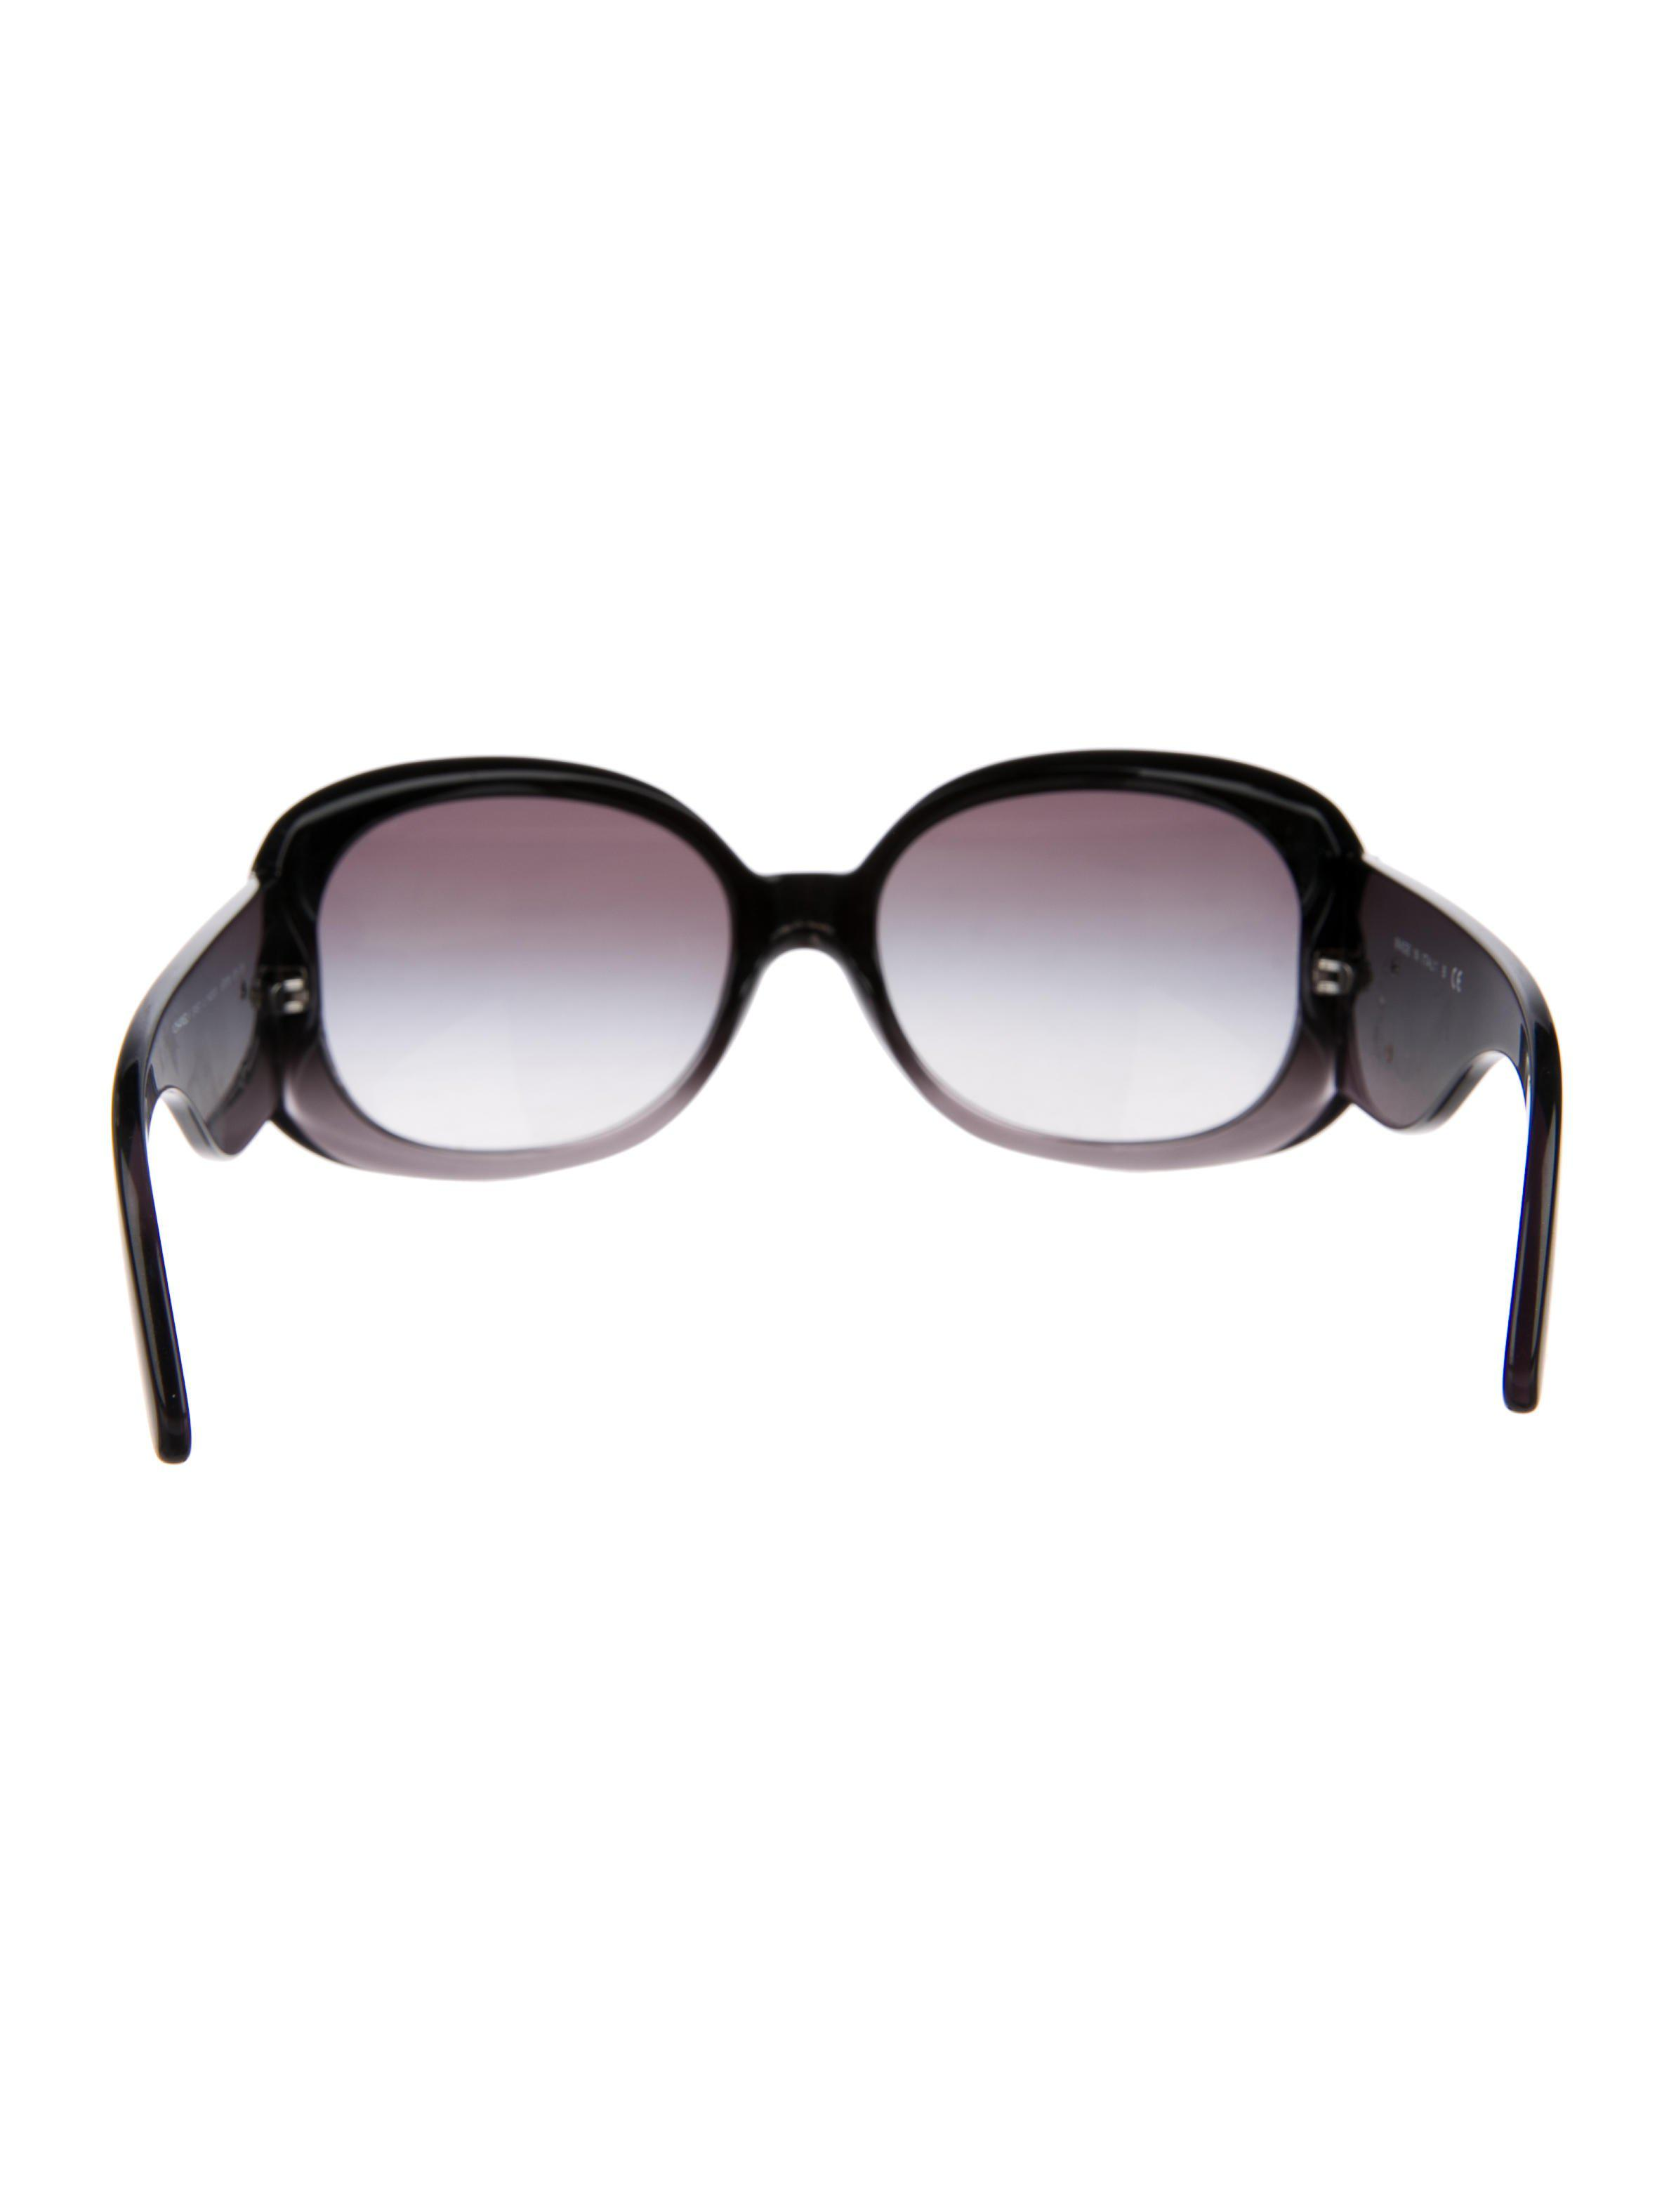 5d7e4728e0c Lyst - Chanel Ombré Cc Sunglasses in Black